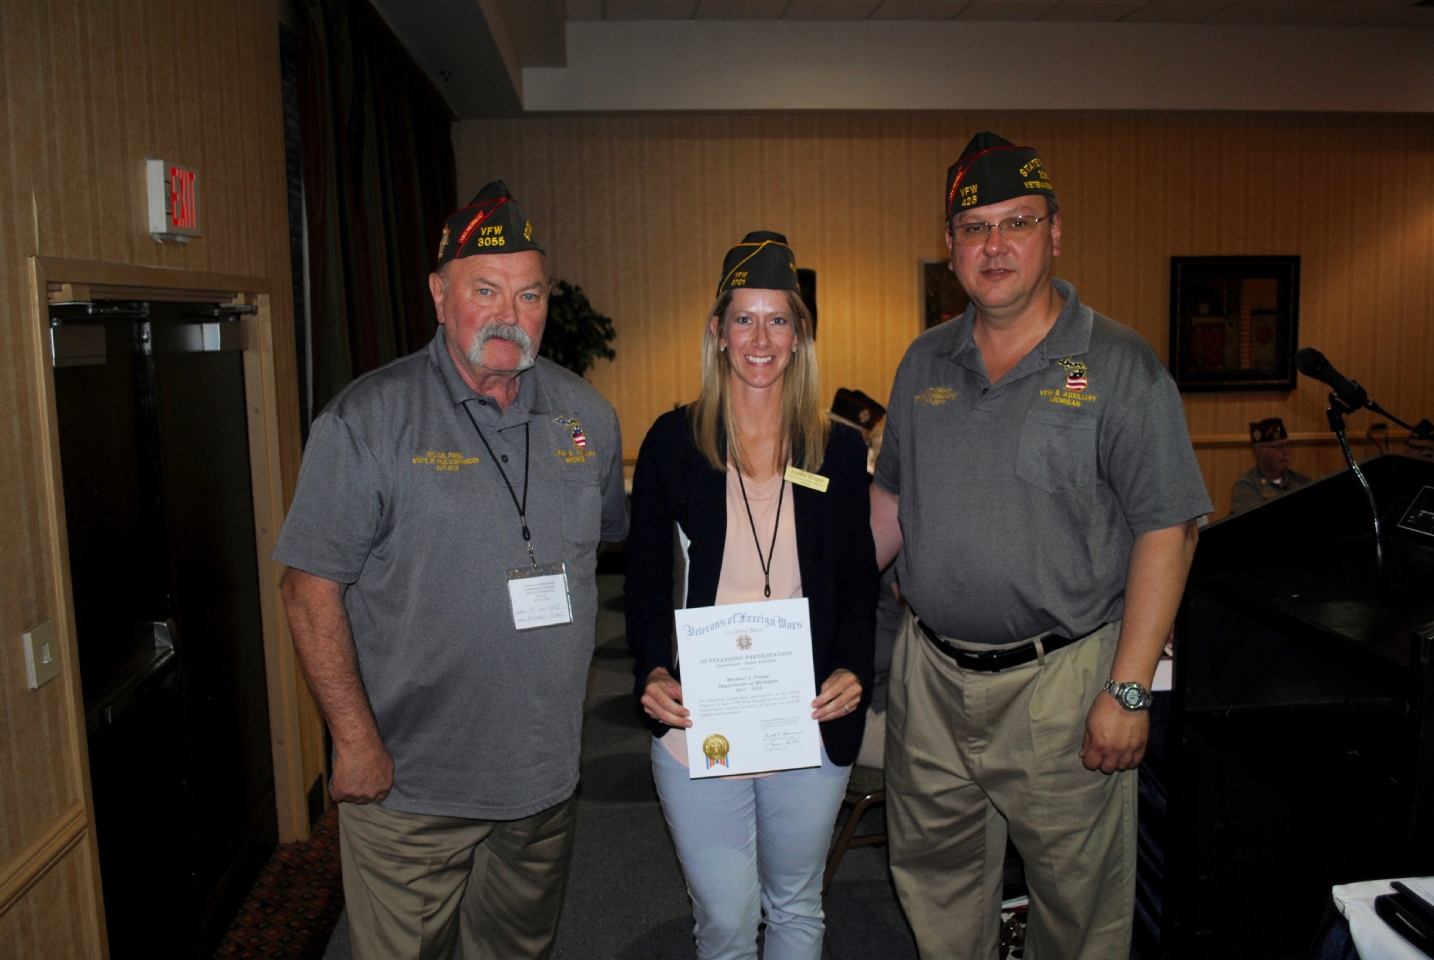 Jessica Wright (c.) presents the Safety Award to Mike Fineis for Outstanding Participation (l.) Matt David (r.).